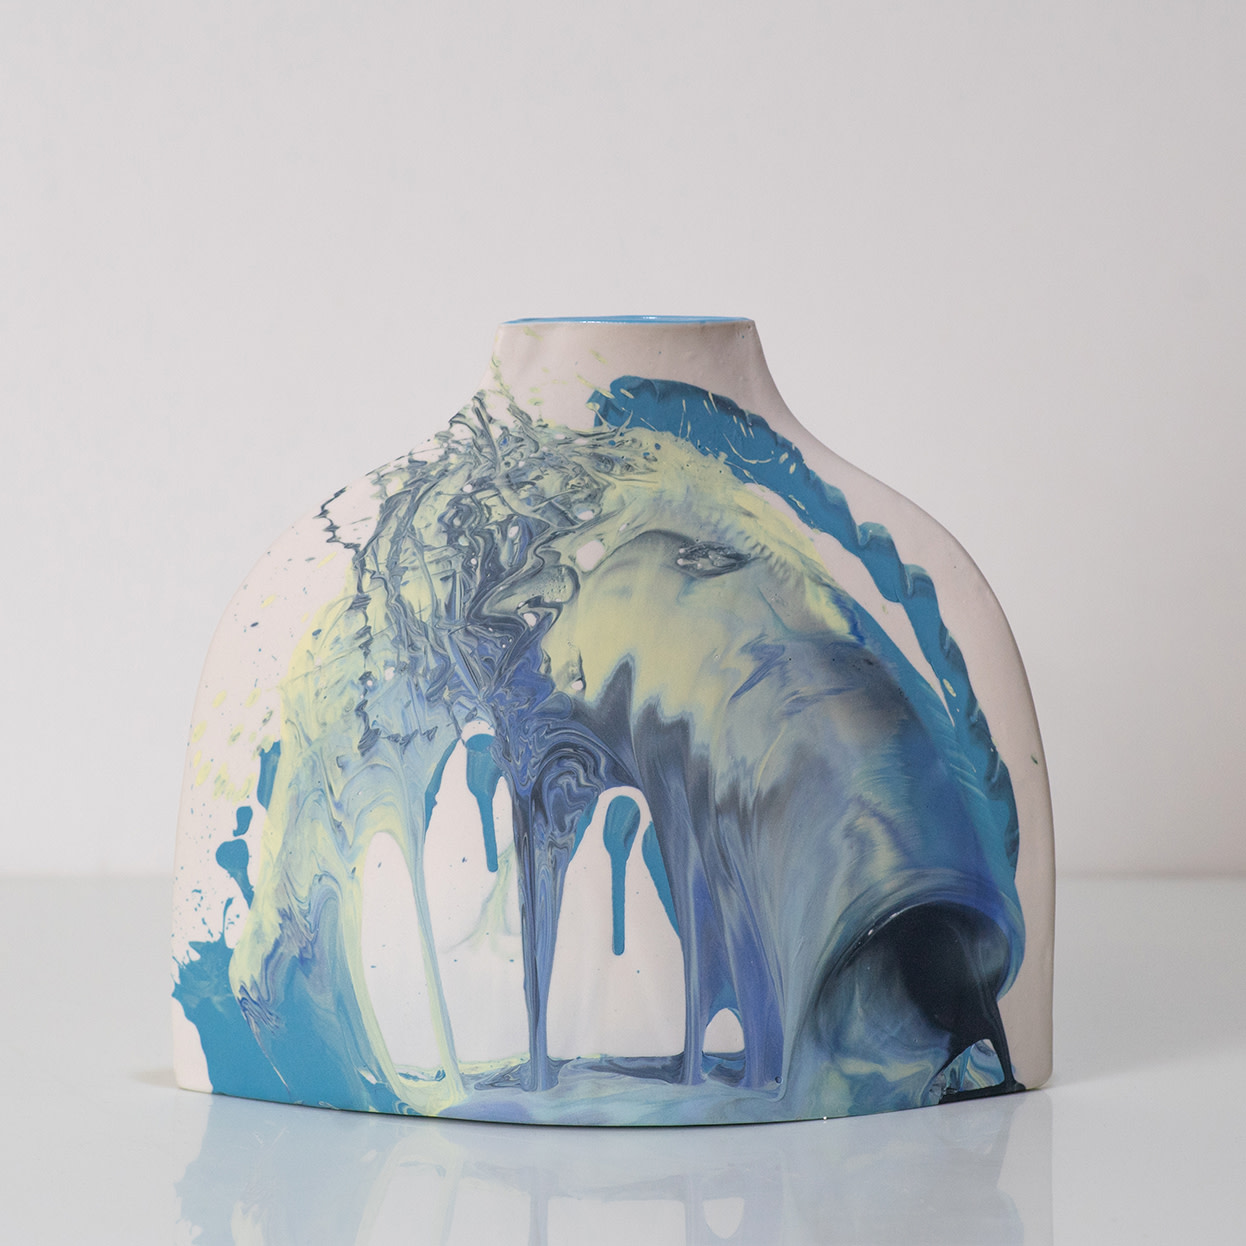 <span class=&#34;link fancybox-details-link&#34;><a href=&#34;/artists/219-james-pegg/works/6096-james-pegg-shoulder-vase-2019/&#34;>View Detail Page</a></span><div class=&#34;artist&#34;><strong>James Pegg</strong></div> <div class=&#34;title&#34;><em>Shoulder Vase</em>, 2019</div> <div class=&#34;medium&#34;>action-cast stained porcelain with glazed interior<br />  (in collaboration with Lucia Fraser)</div> <div class=&#34;dimensions&#34;>h 20 cm x w 17.5 cm</div><div class=&#34;price&#34;>£205.00</div><div class=&#34;copyright_line&#34;>OwnArt: £ 20.50 x 10 Months, 0% APR </div>